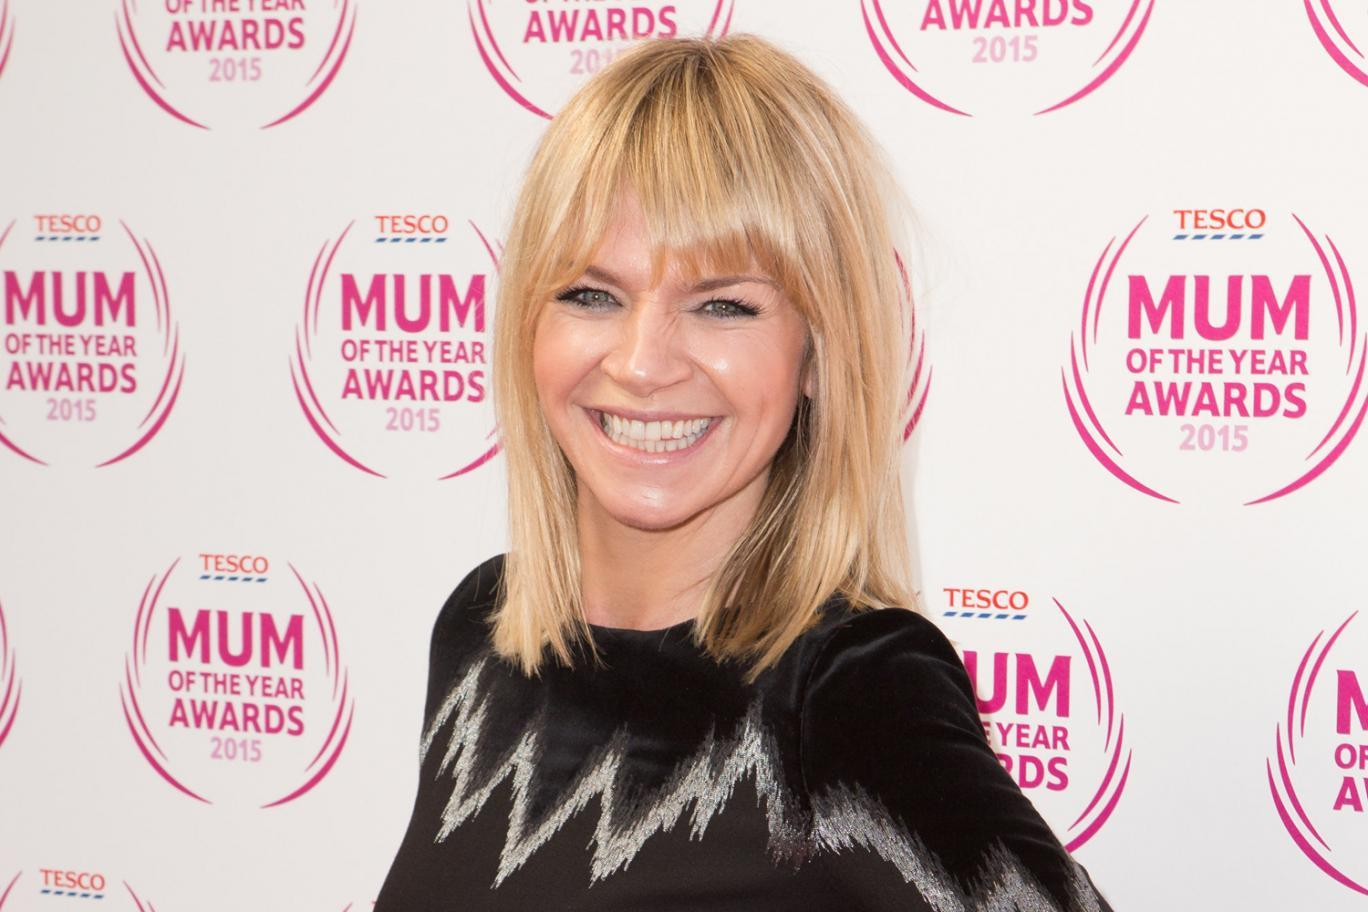 New Female Top Gear Host Is A Certainty, Reports Say UNILAD zoe ball 22